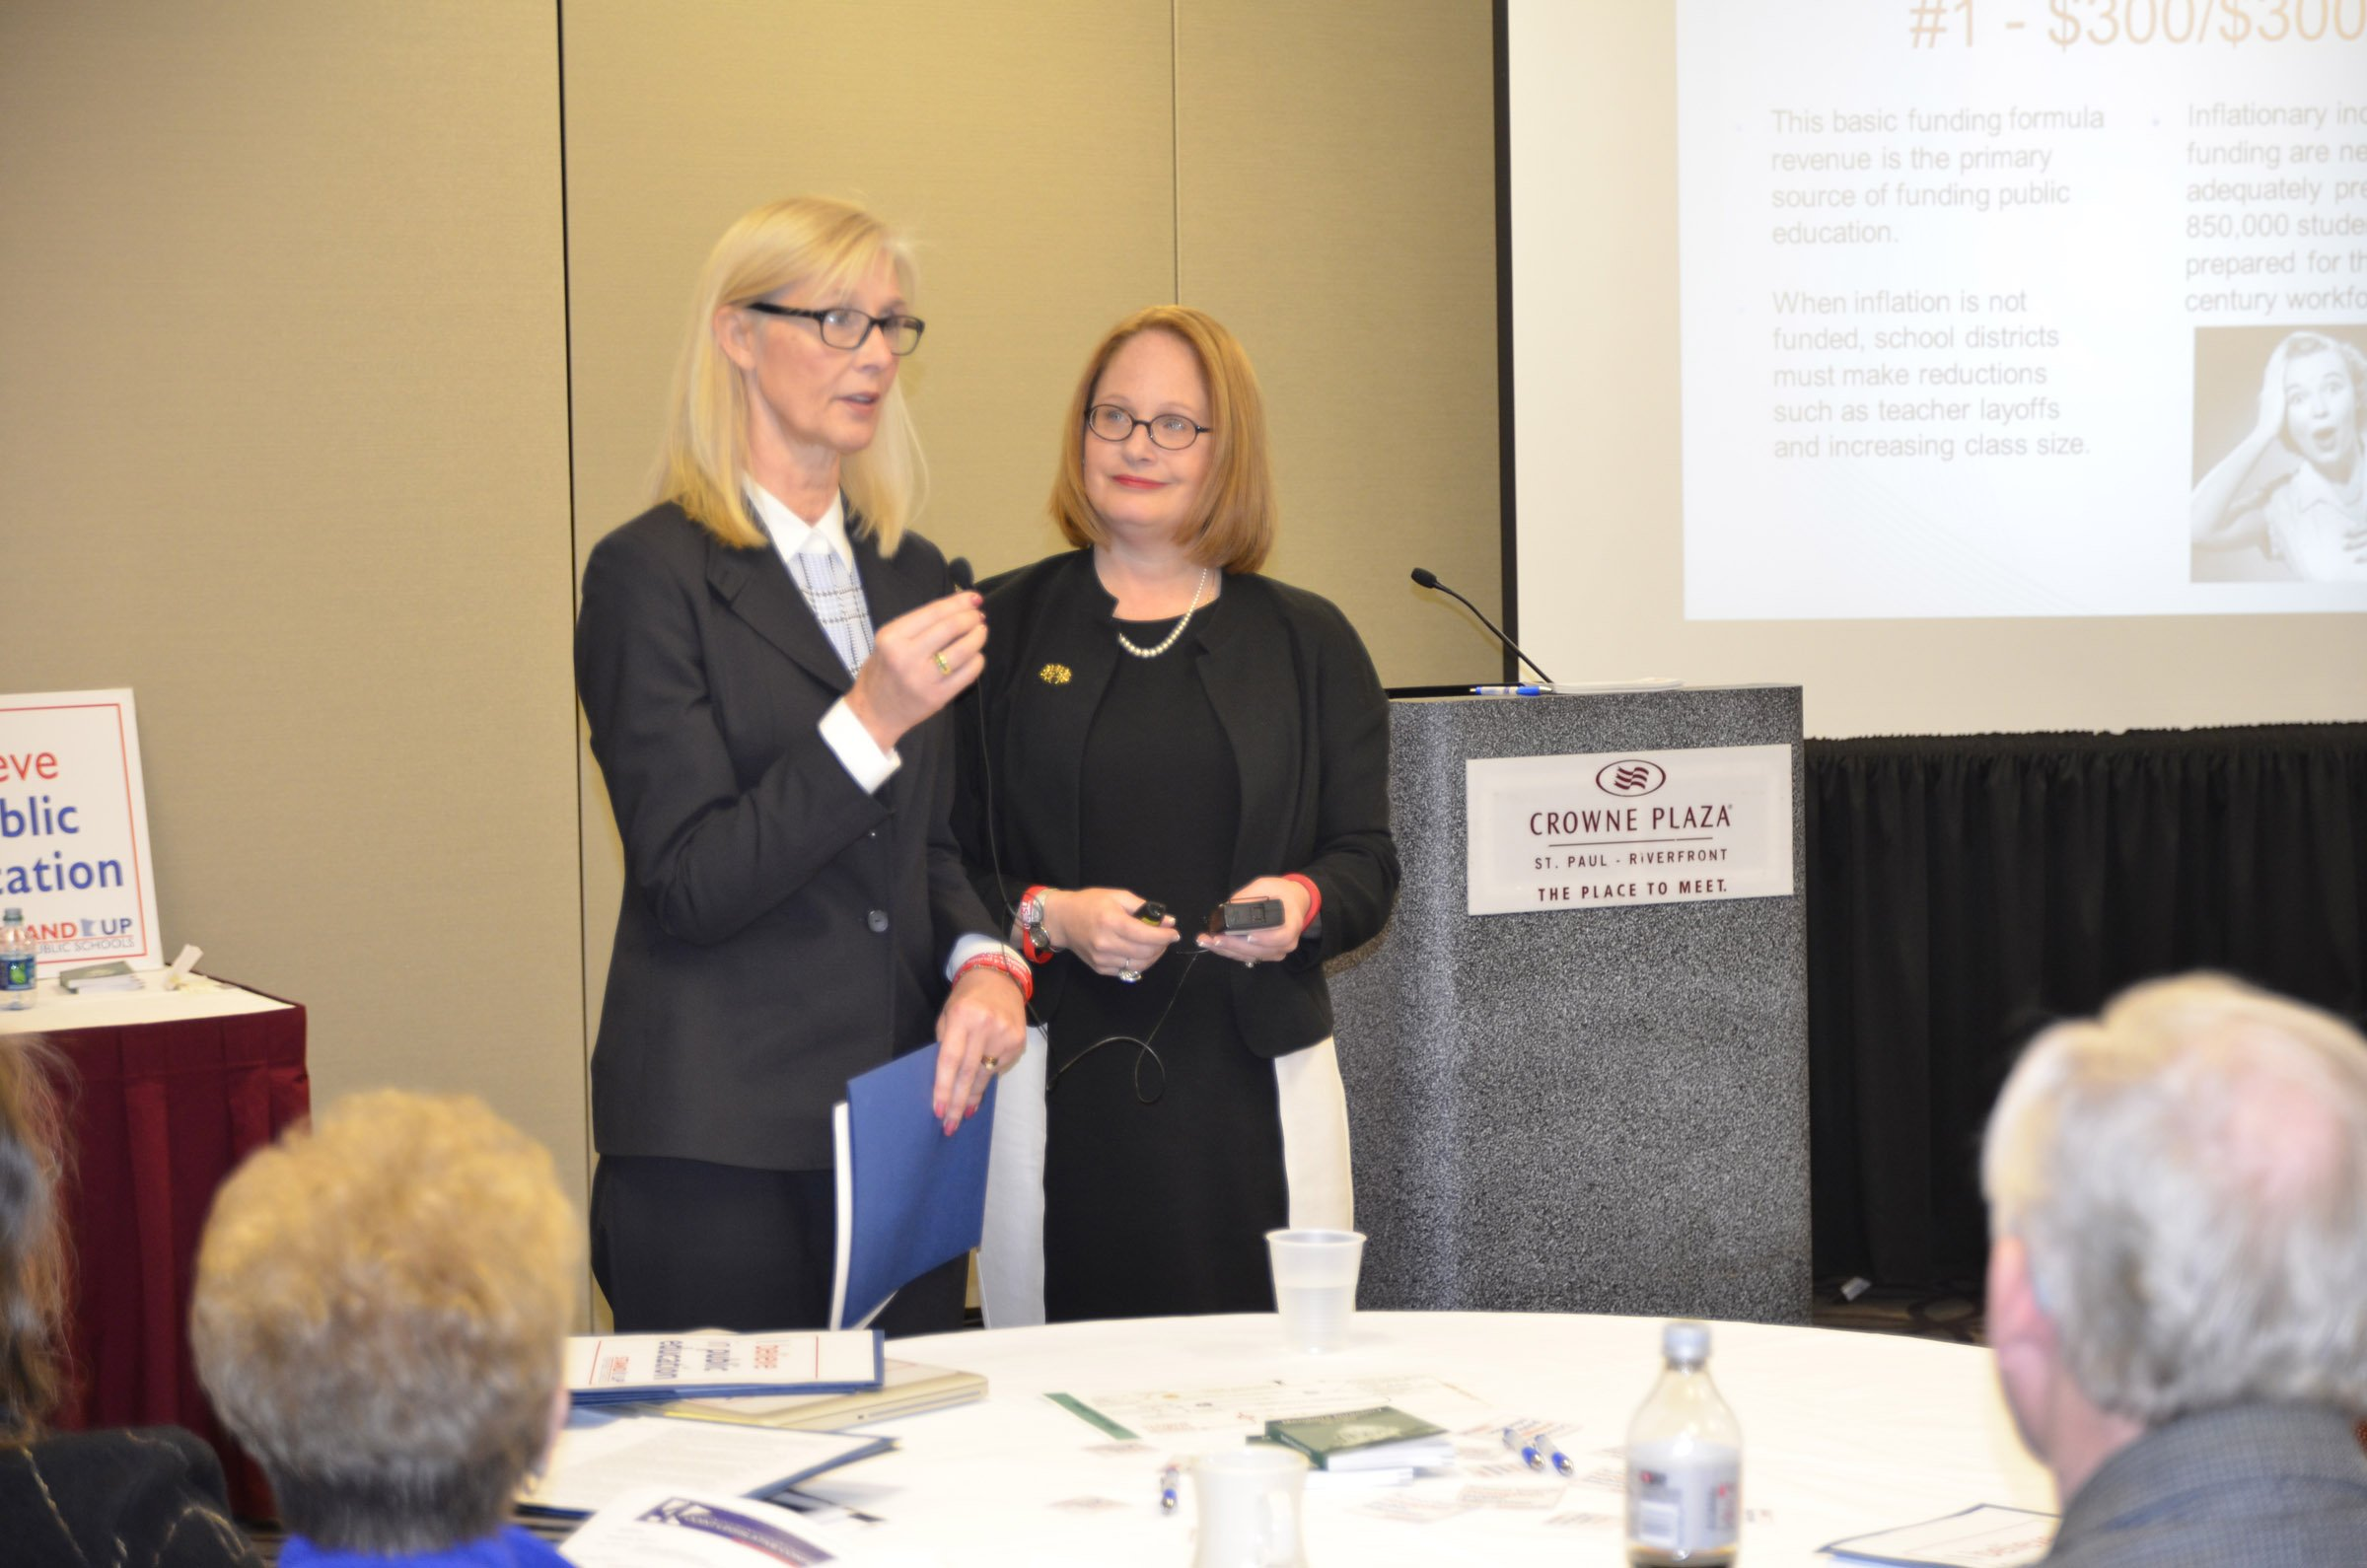 MSBA lobbyists Denise Dittrich (left) and Grace Keliher updated members on key issues during a breakout session. Visit https://www.mnmsba.org/Portals/0/PDFs/Advocacy/JLC-2015-MSBA-Breakout.pdf to view a copy of this presentation.